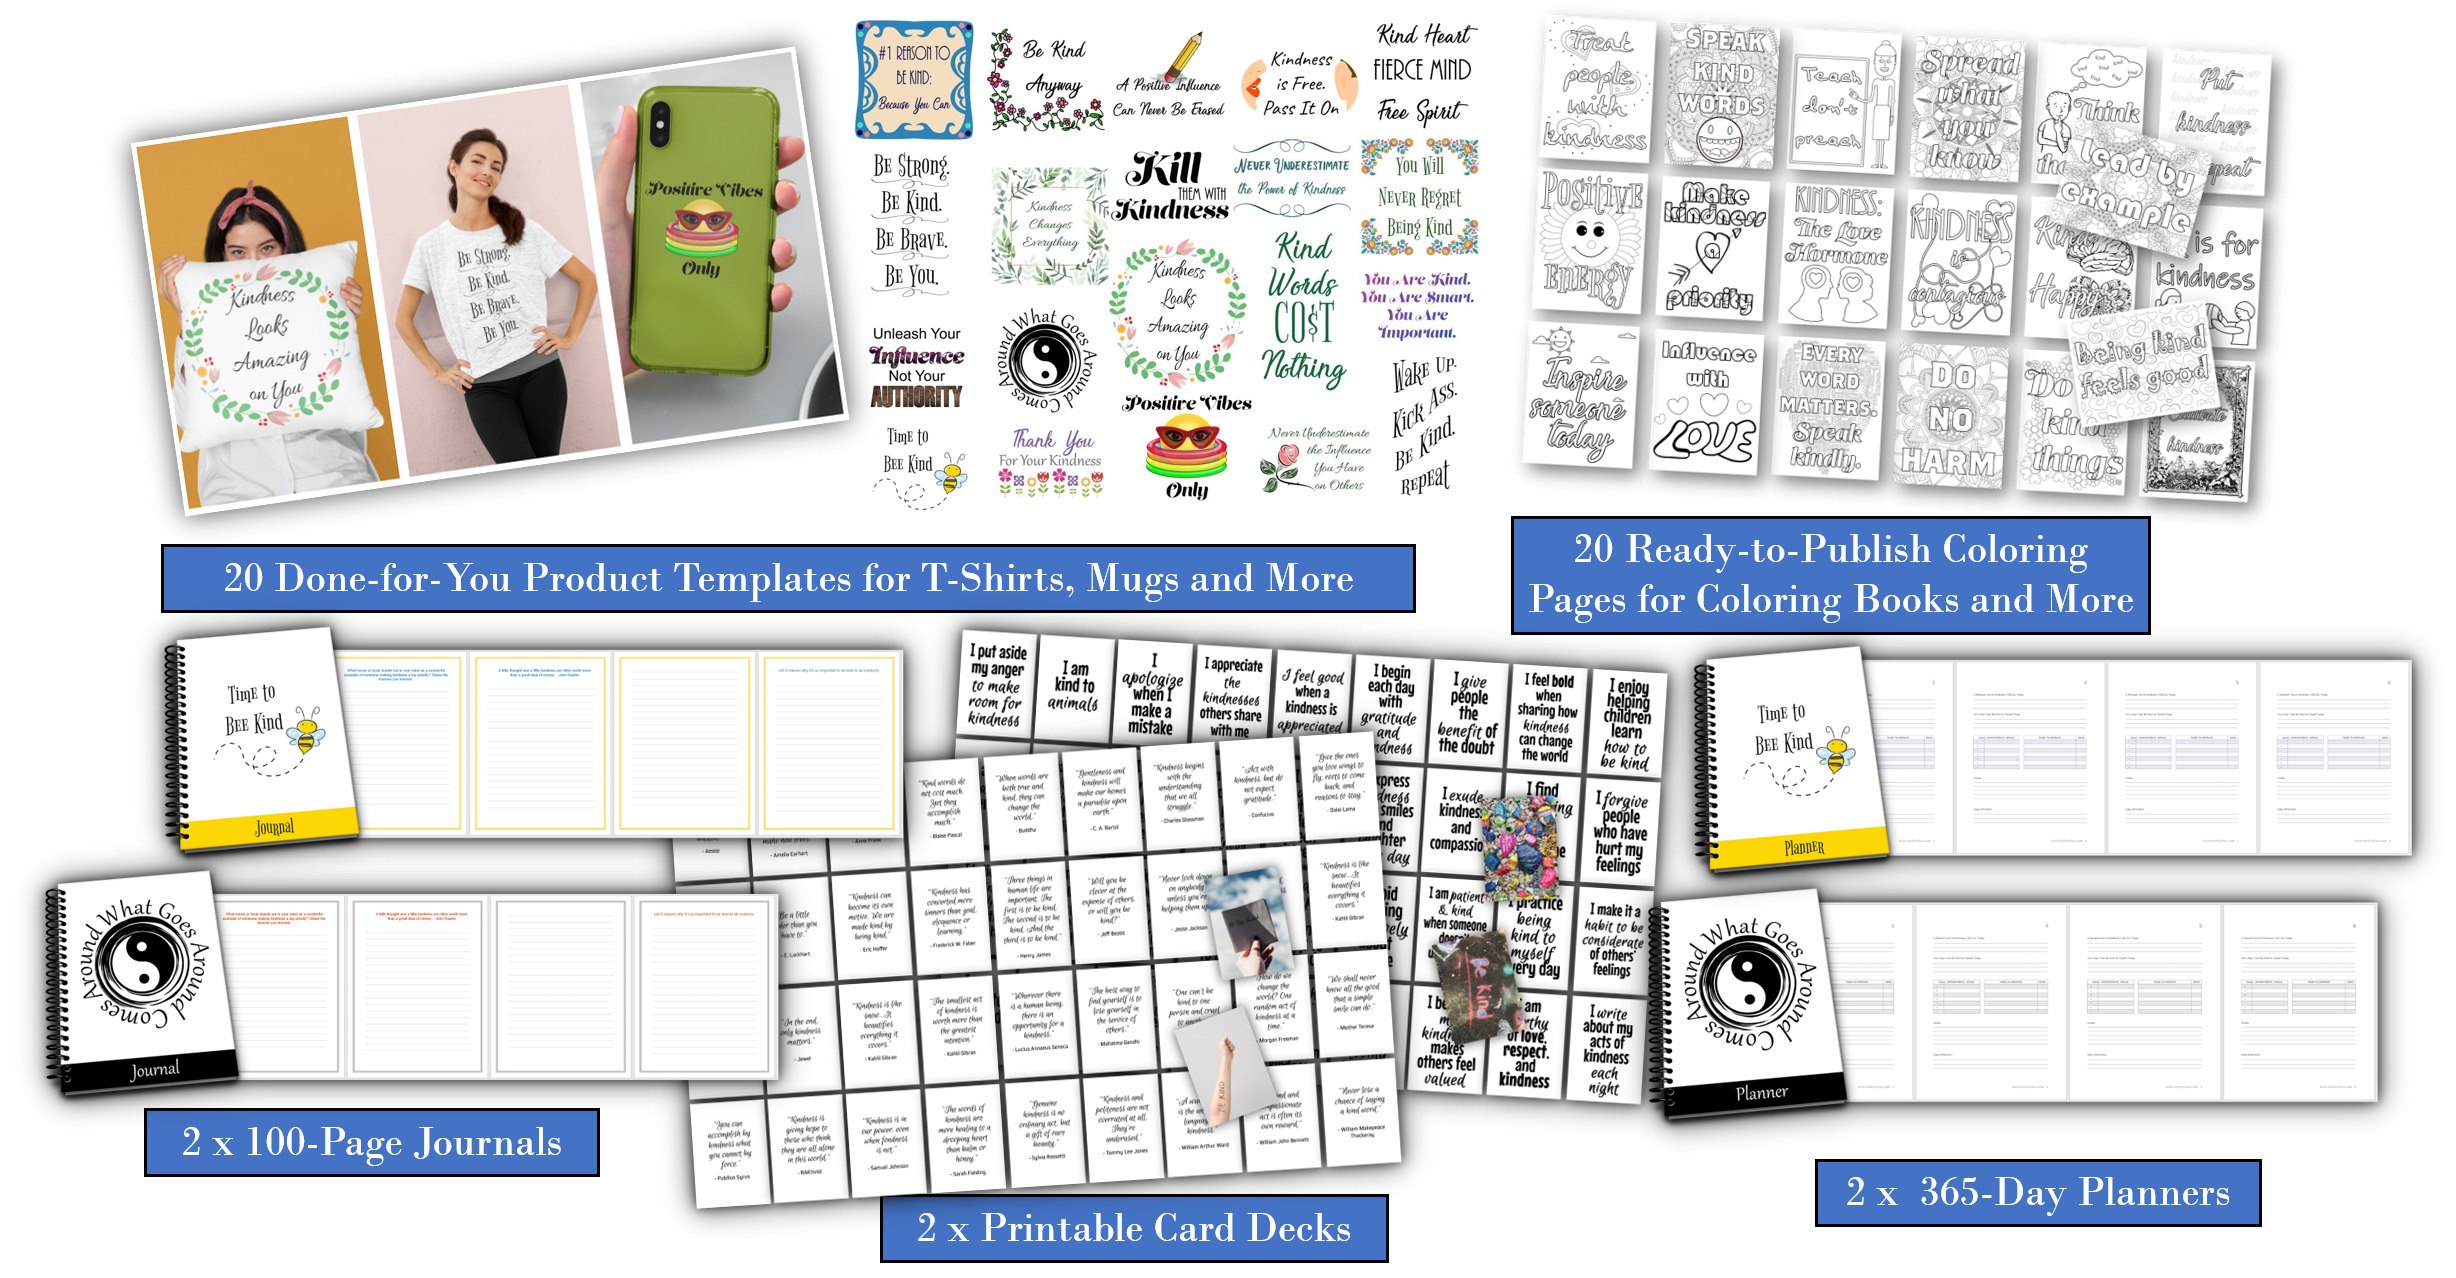 The Power of Kindness Templates Pack